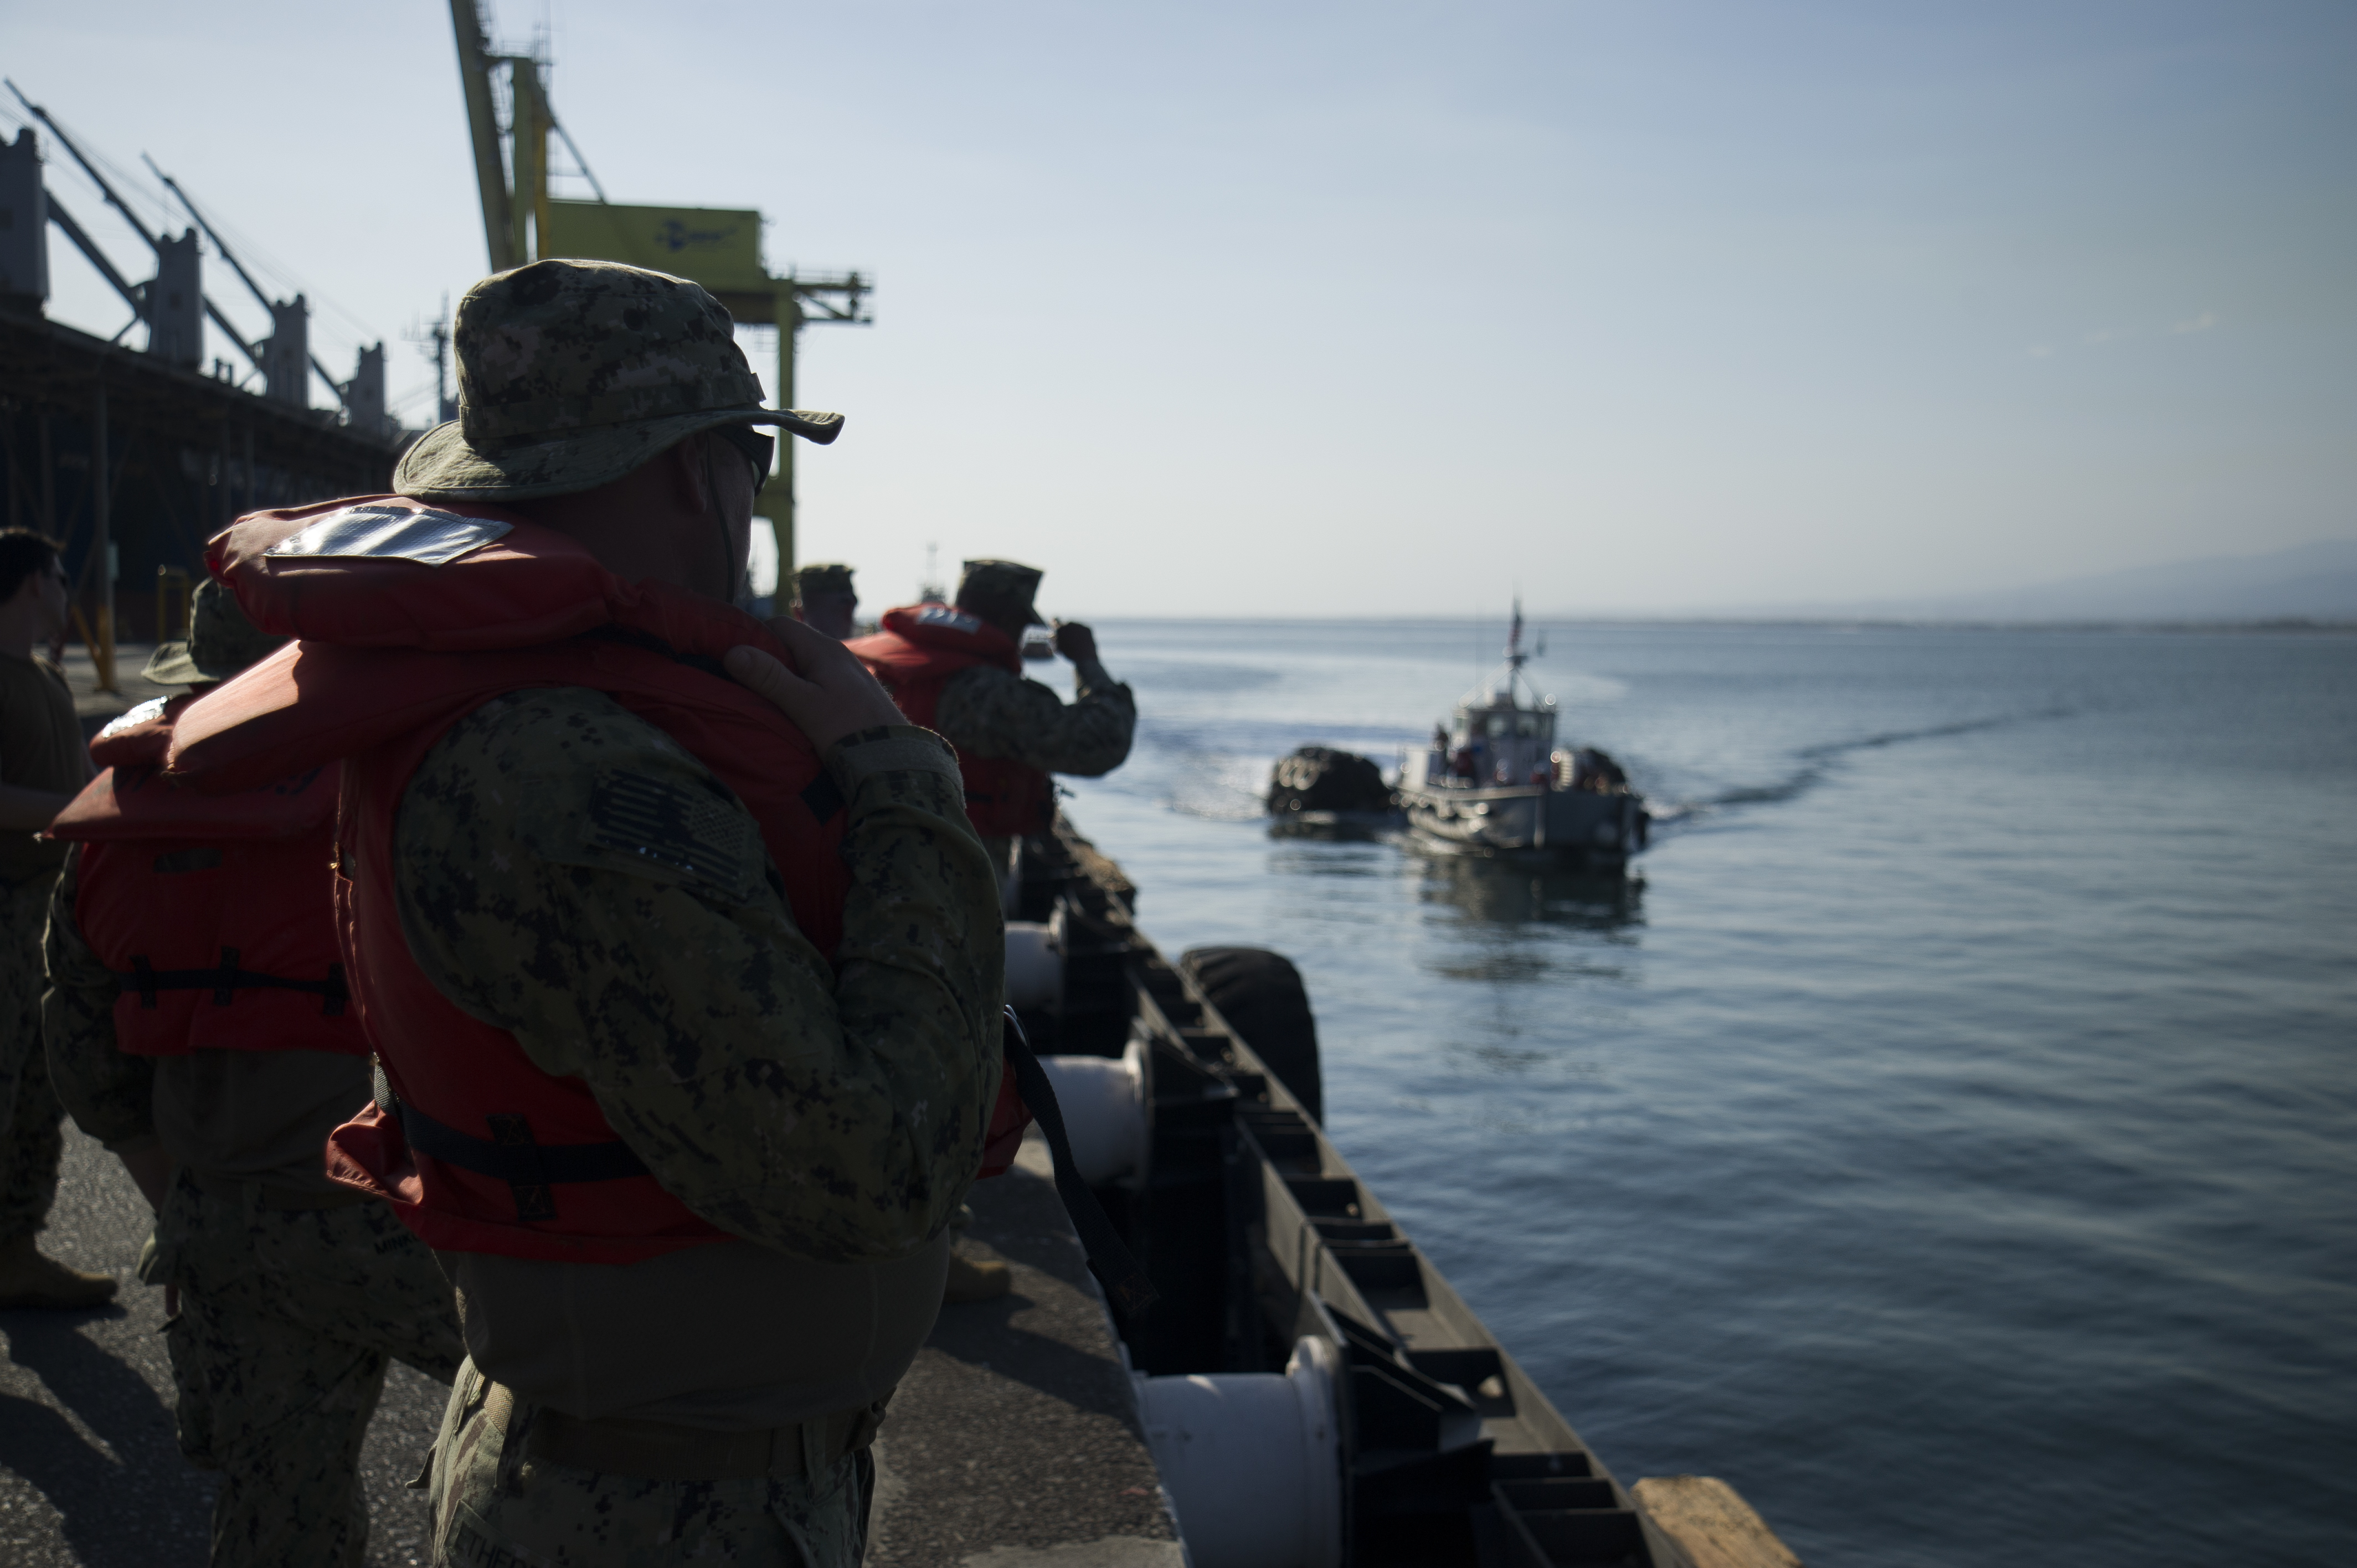 ACAJUTLA, El Salvador — Naval Beach Group (NBG) 2 kicked off Joint Logistics Over the Shore (JLOTS) 18 exercise with lowering and assembly of Improved Navy Lighterage System Causeway Ferries from USNS Brittin (T-AKR 305) April 18, 2018.